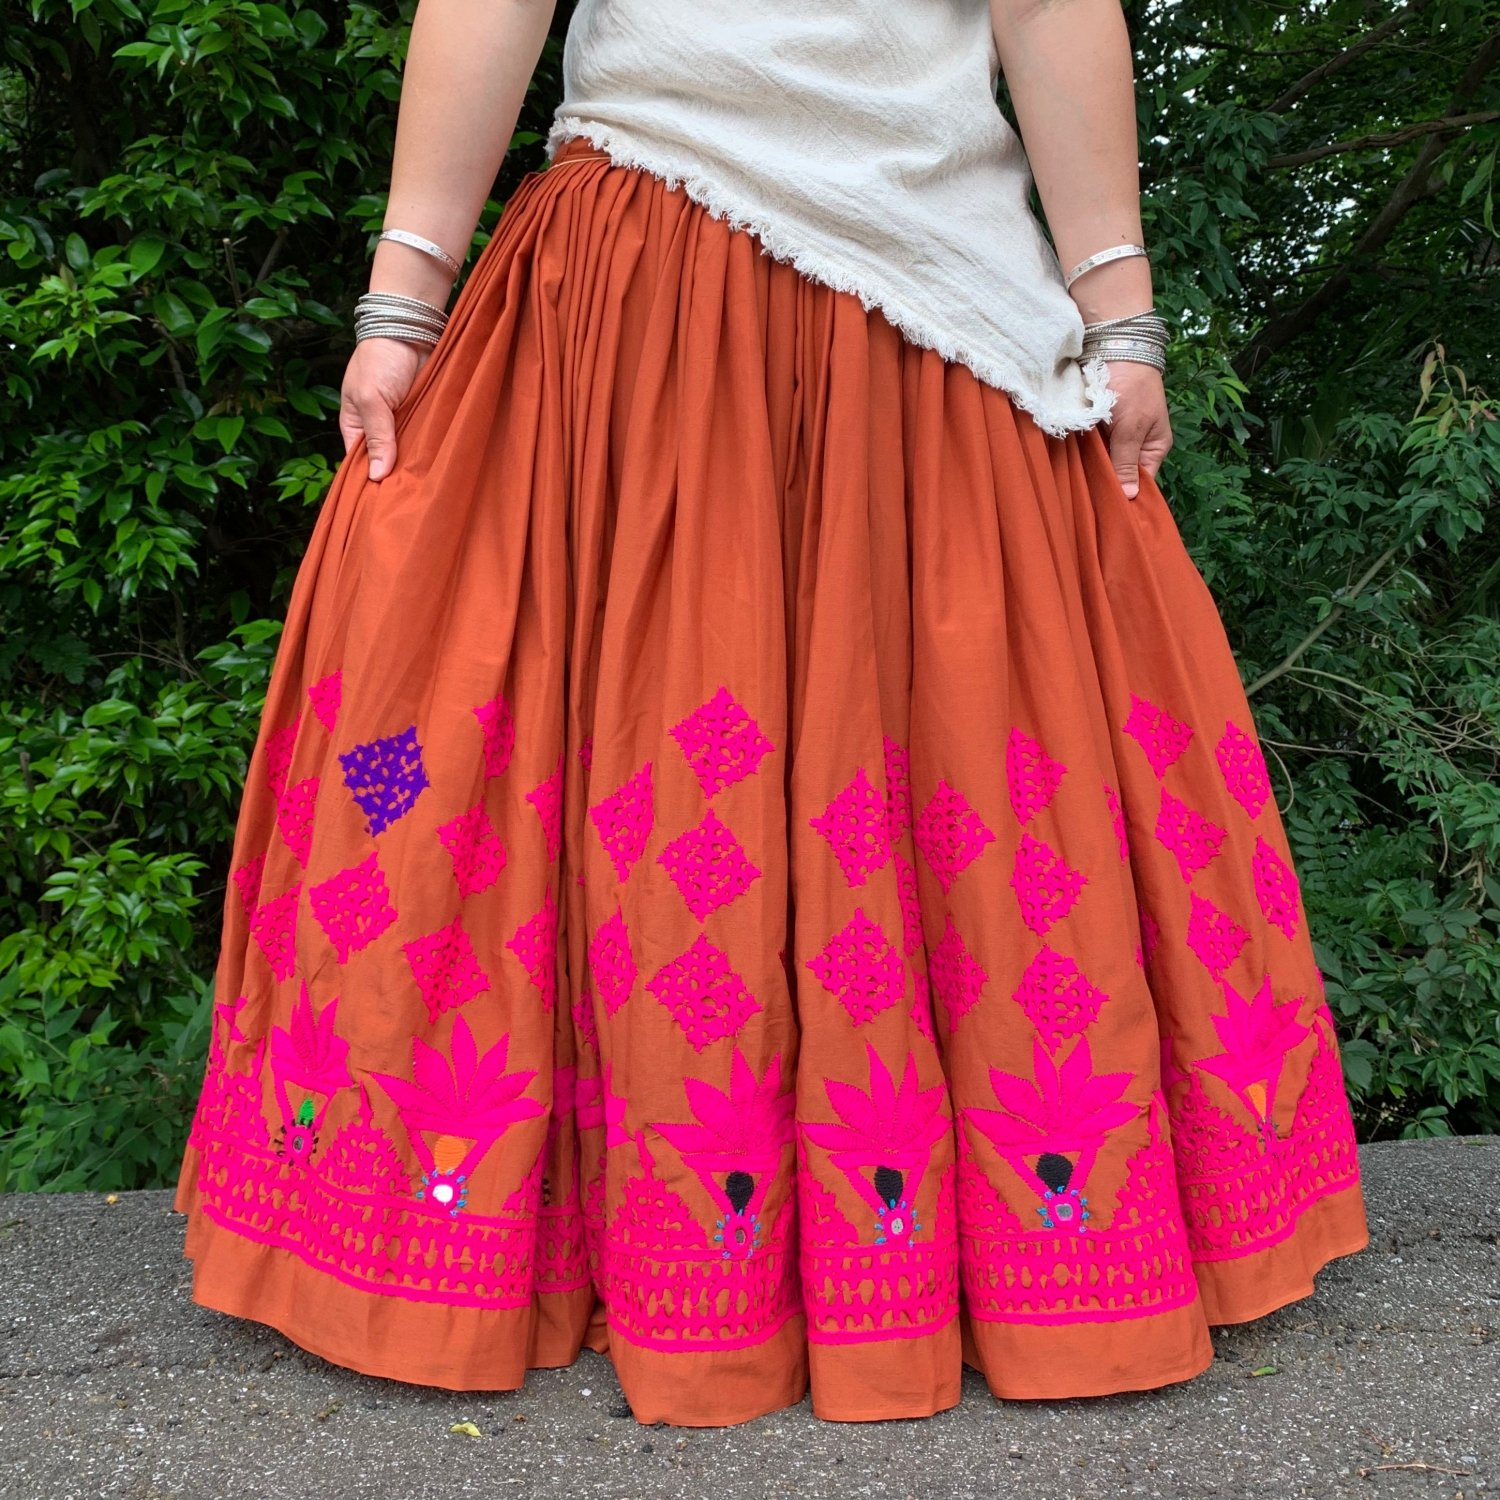 <img class='new_mark_img1' src='https://img.shop-pro.jp/img/new/icons1.gif' style='border:none;display:inline;margin:0px;padding:0px;width:auto;' />Rajasthani gypsy skirt #4* vintage * インド刺繍スカート バンジャラ《テラコッタ》